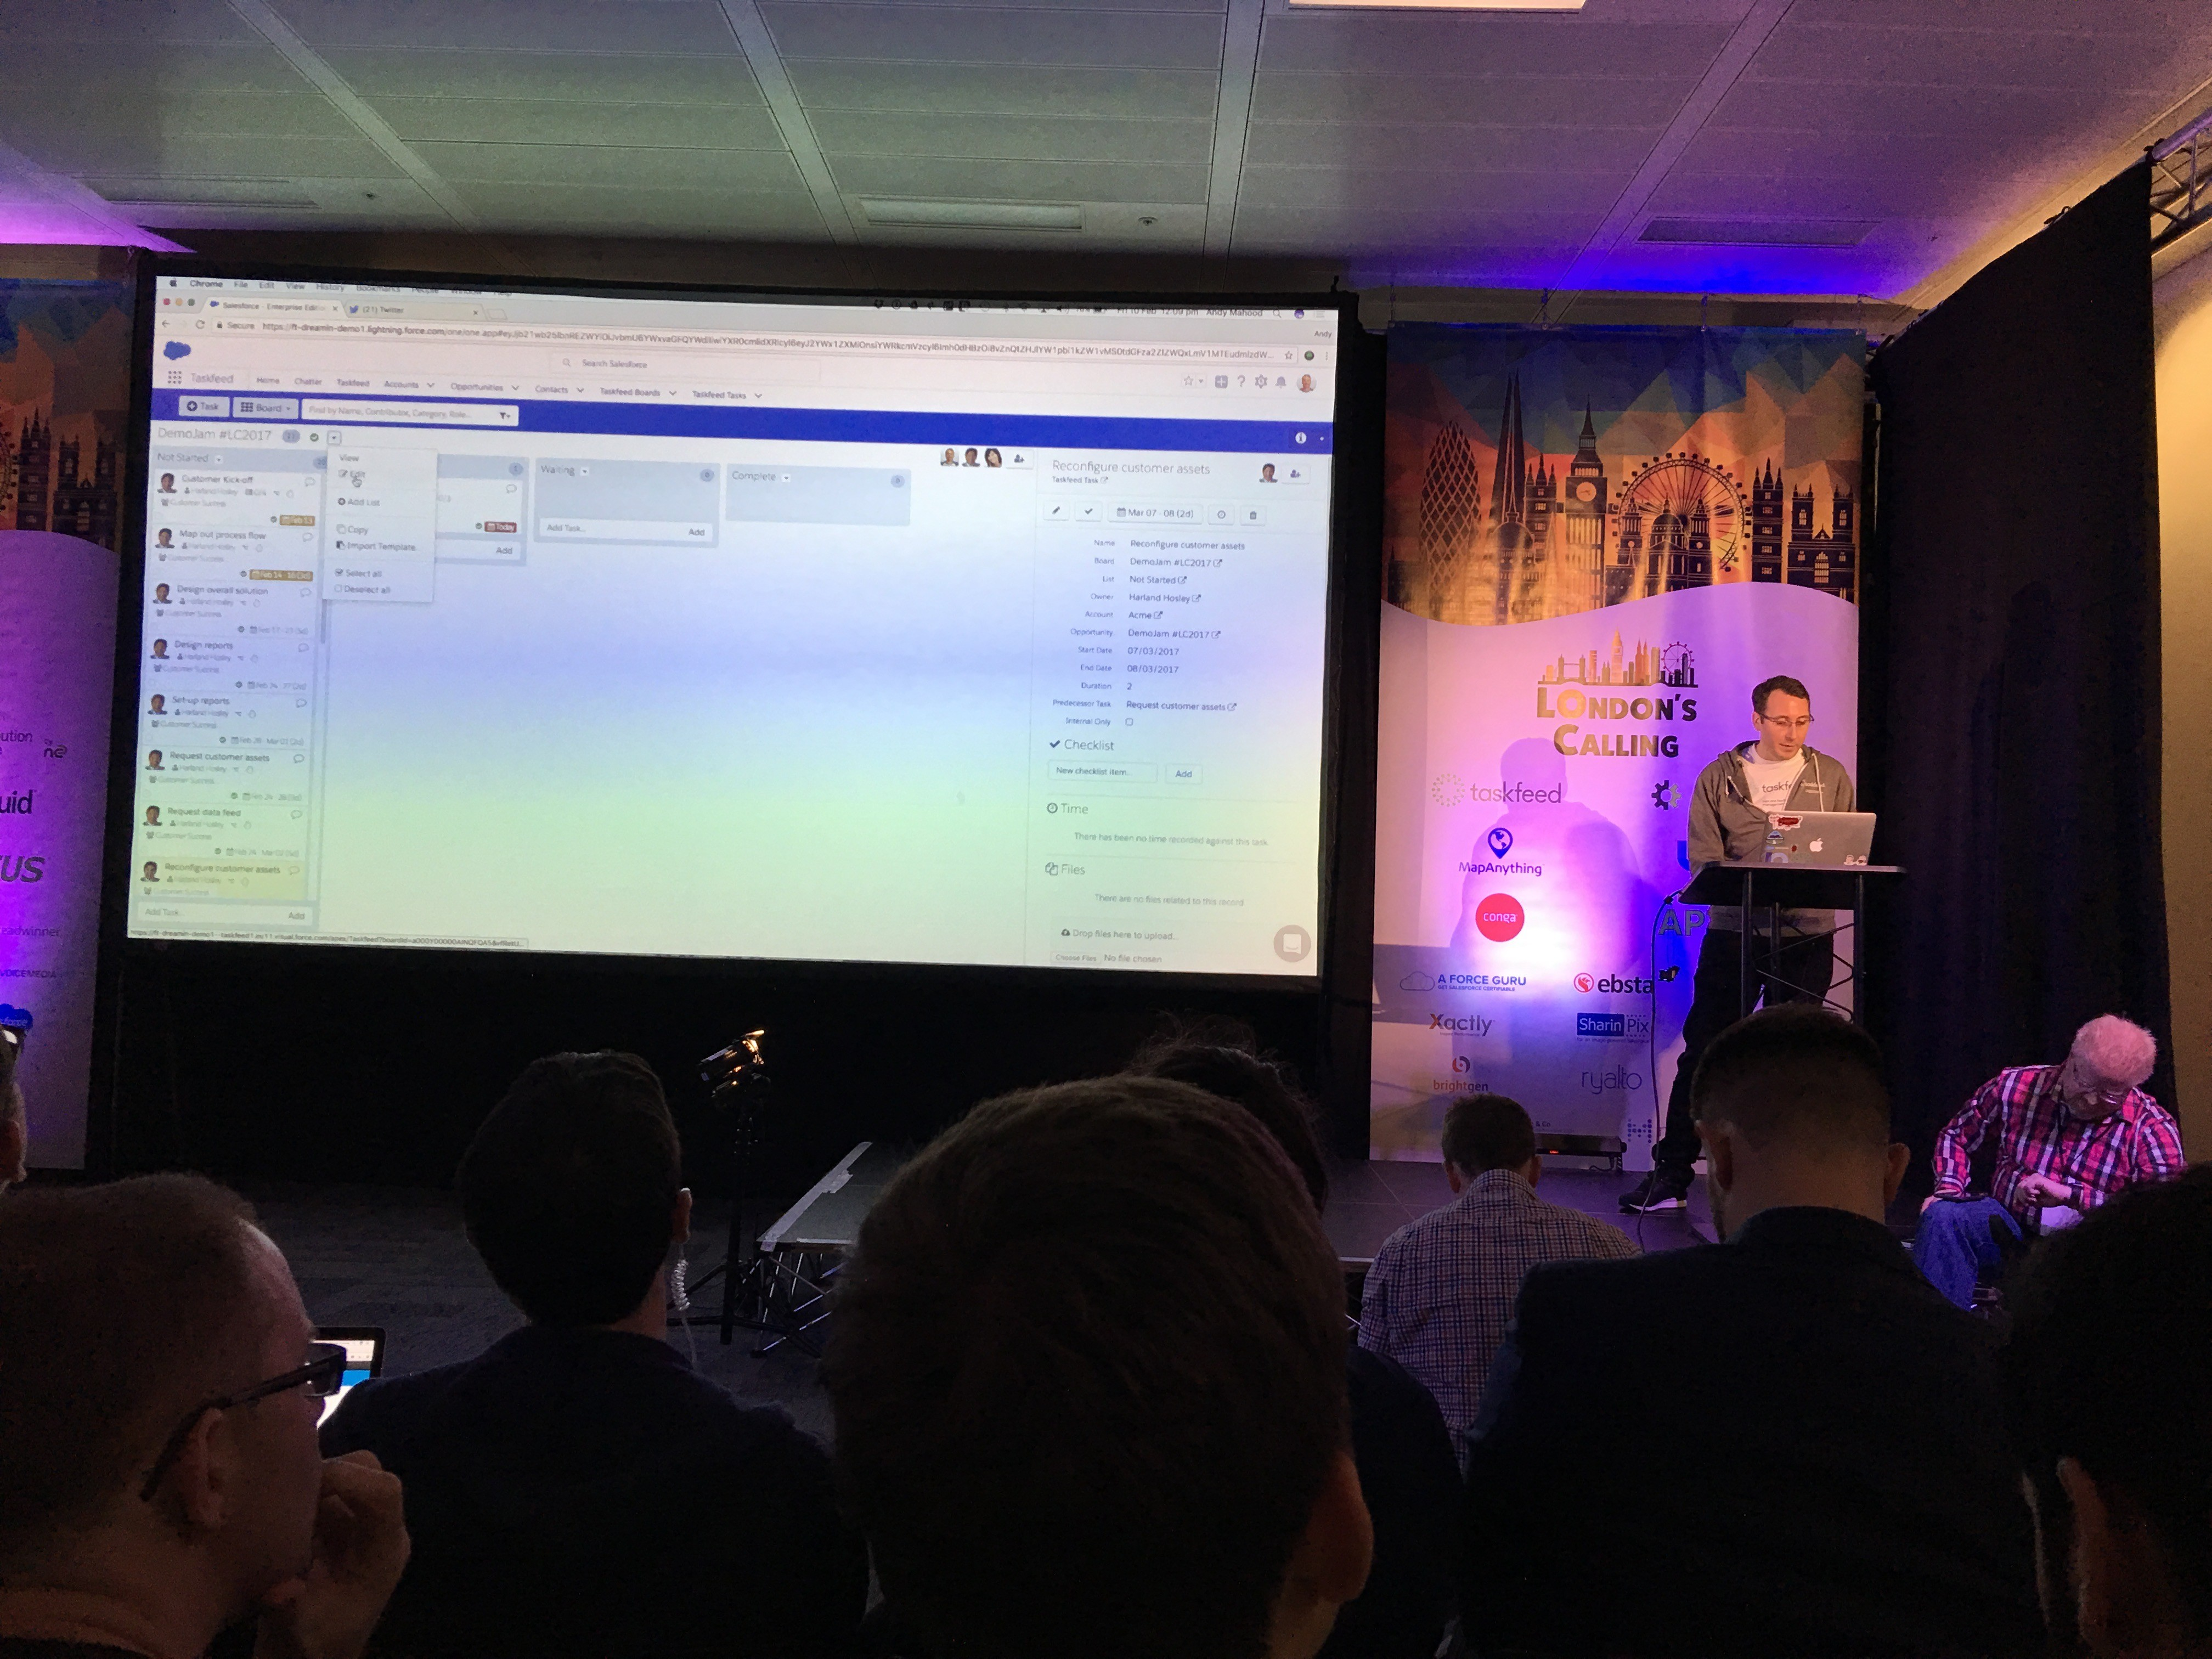 CloudShift attends Salesforce Community event, London's Calling